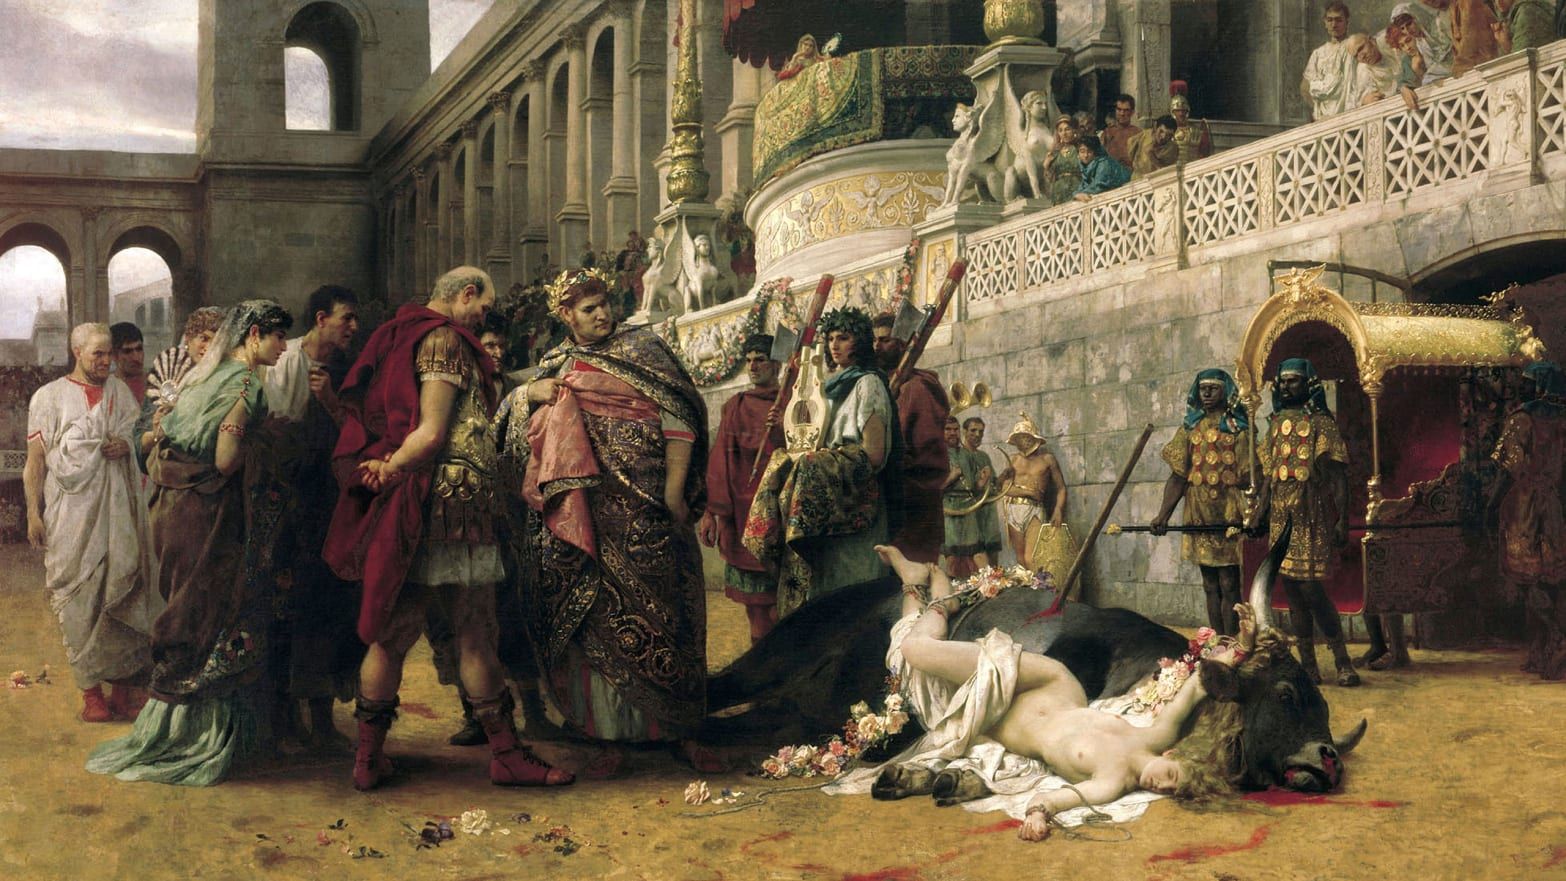 Did Christian Historians Exaggerate Persecution by the Romans?